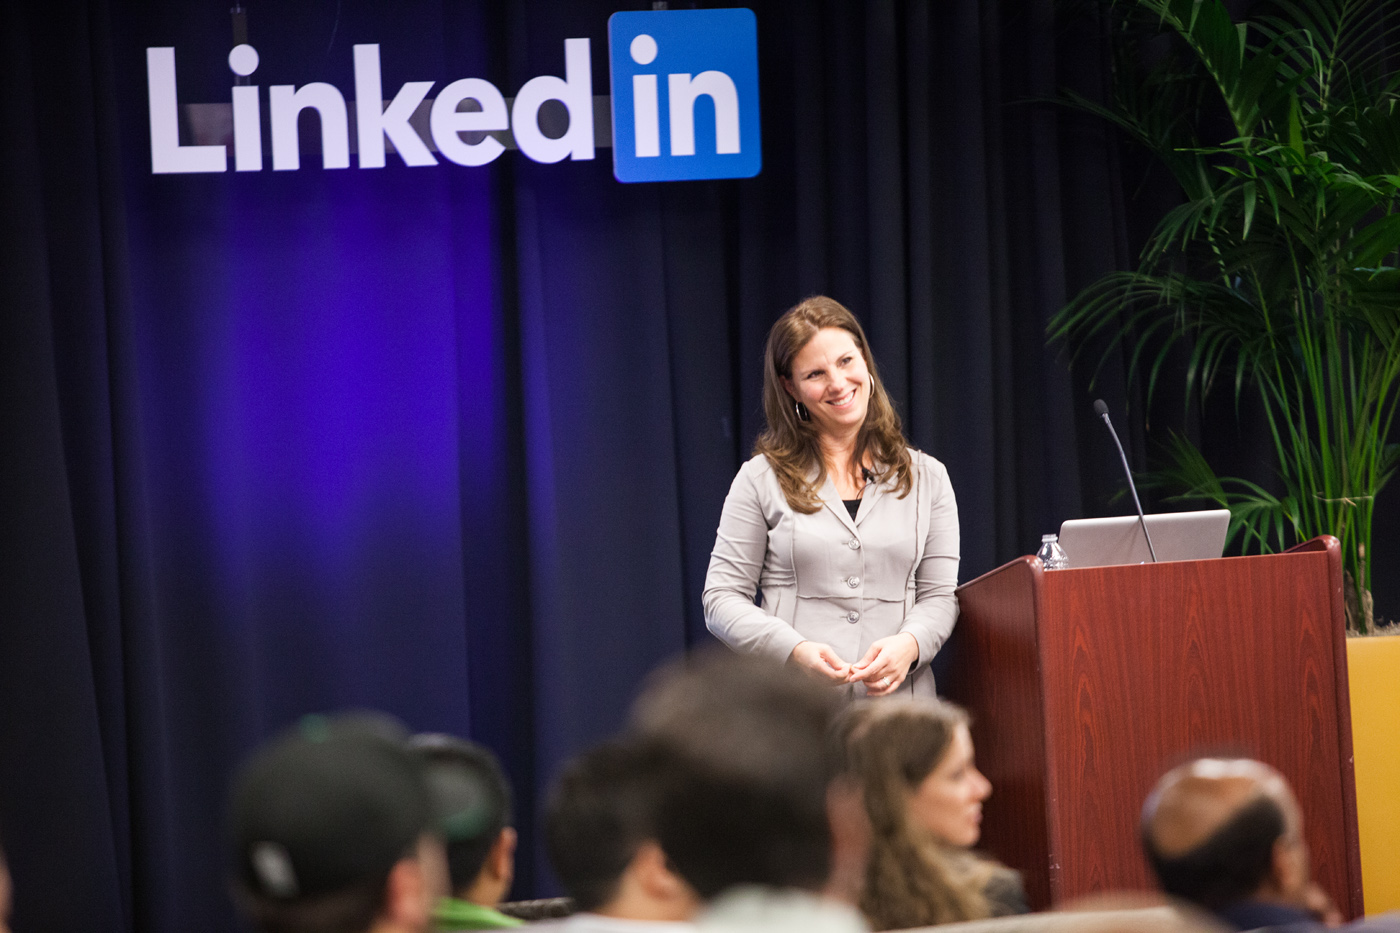 nancy duarte linkedin speaker series